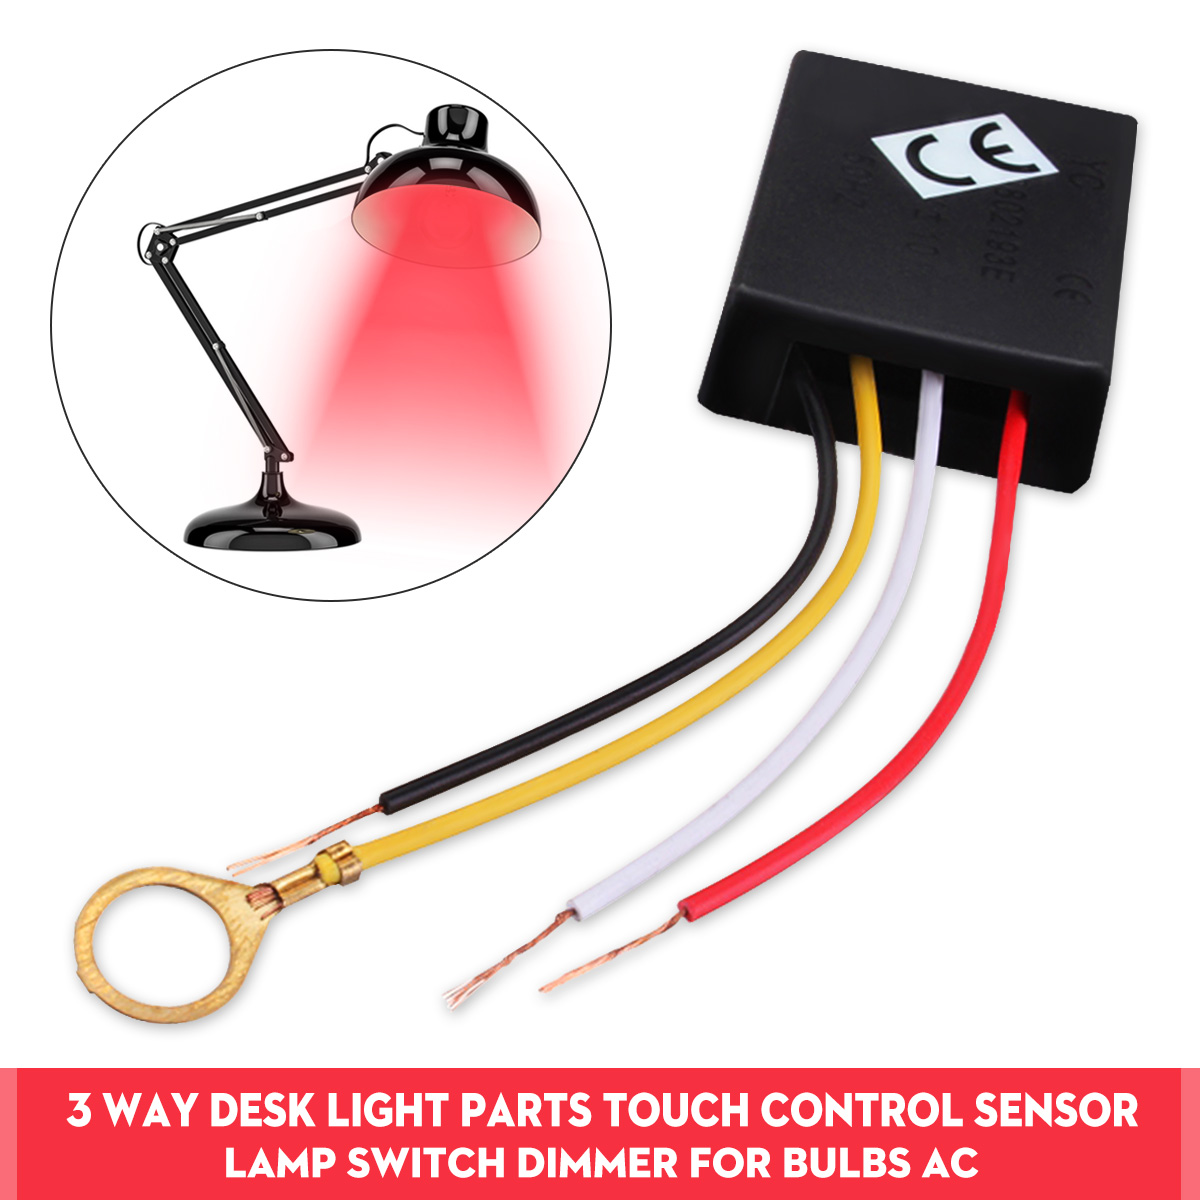 3 Way 110/220V Table Desk Lamp Switch Light Lamp Touch Switch Control Sensor Dimmer Repair for Bulbs